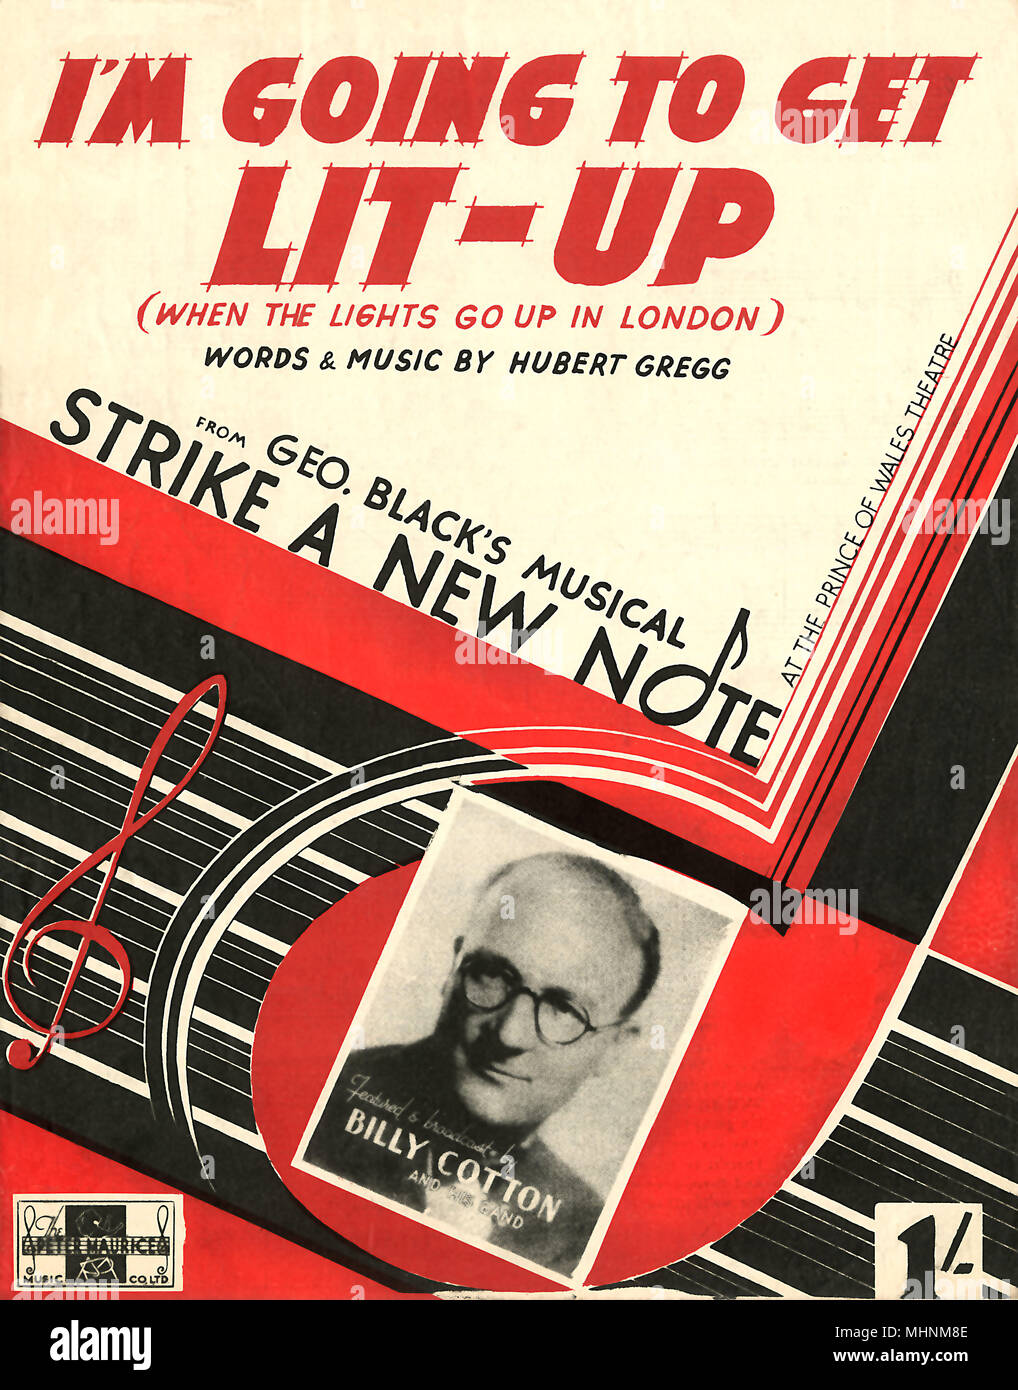 'I'm going to get lit up when the light go up in London' - Music Sheet Cover, words and music by Hubert Gregg from Geo. Black's Musical Strike a new note. Featured and broadcast by Billy Cotton and his band. An illustration of notes and music bars with a photo of Billy Cotton on the middle bottom.     Date: circa 1943 - Stock Image